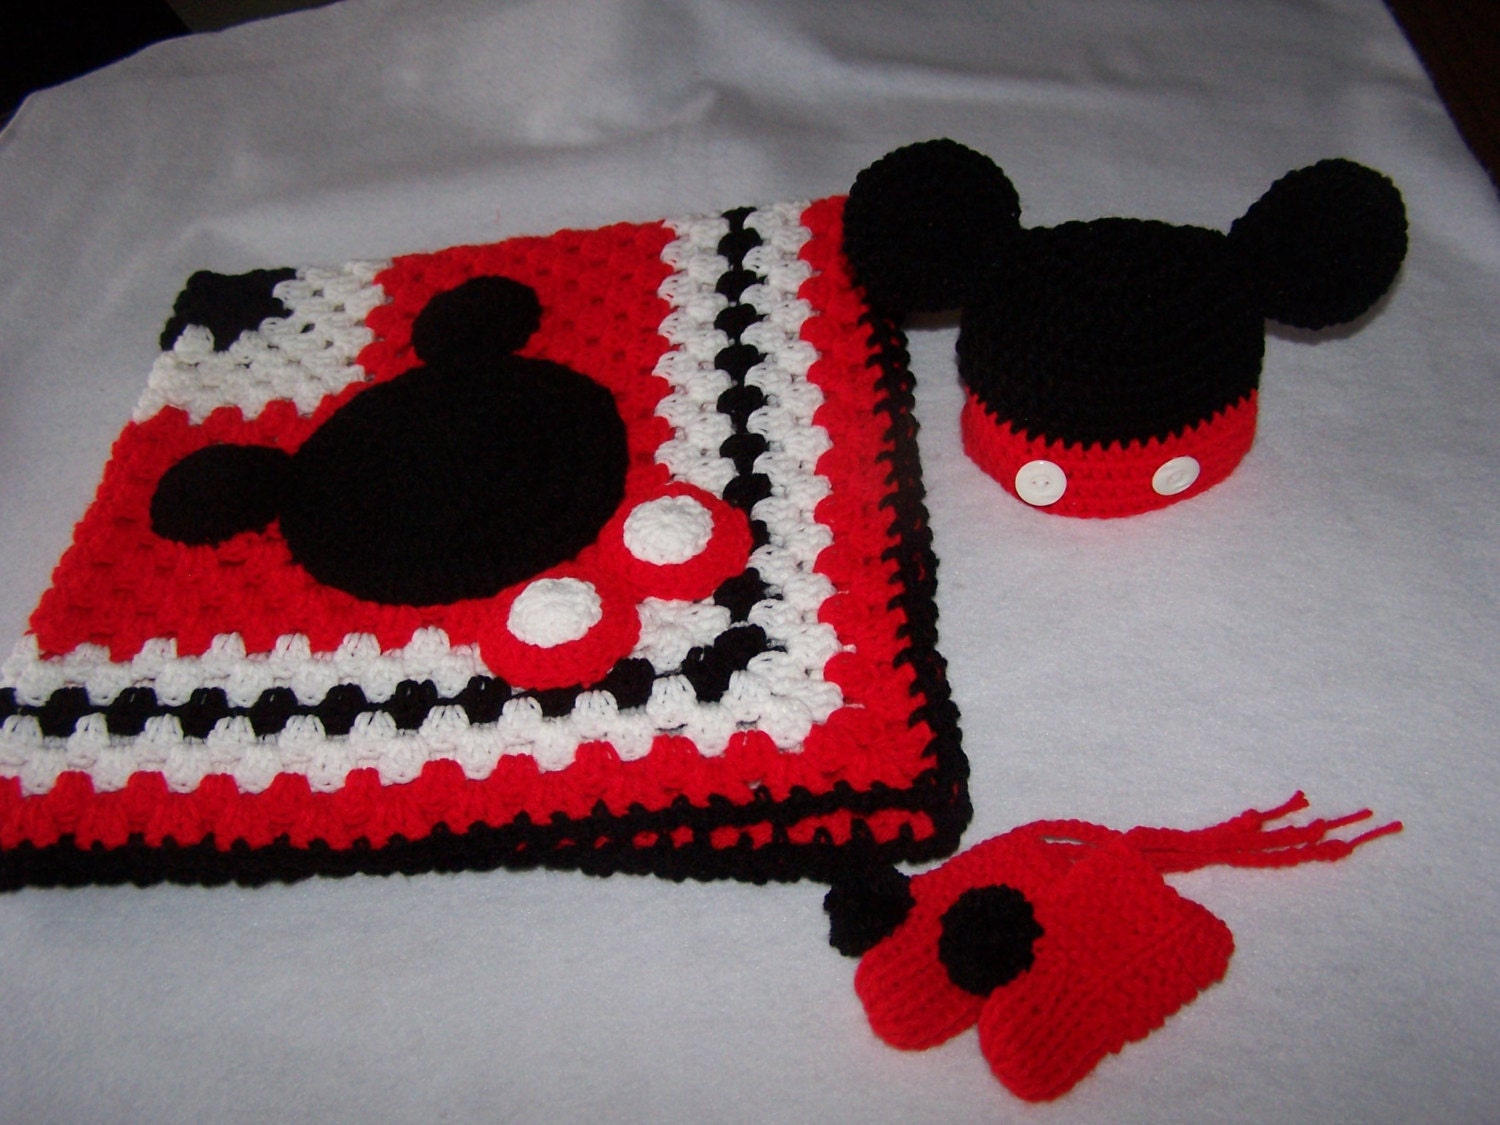 Hand Crocheted Disney Mickey Mouse Granny Square Baby Blanket